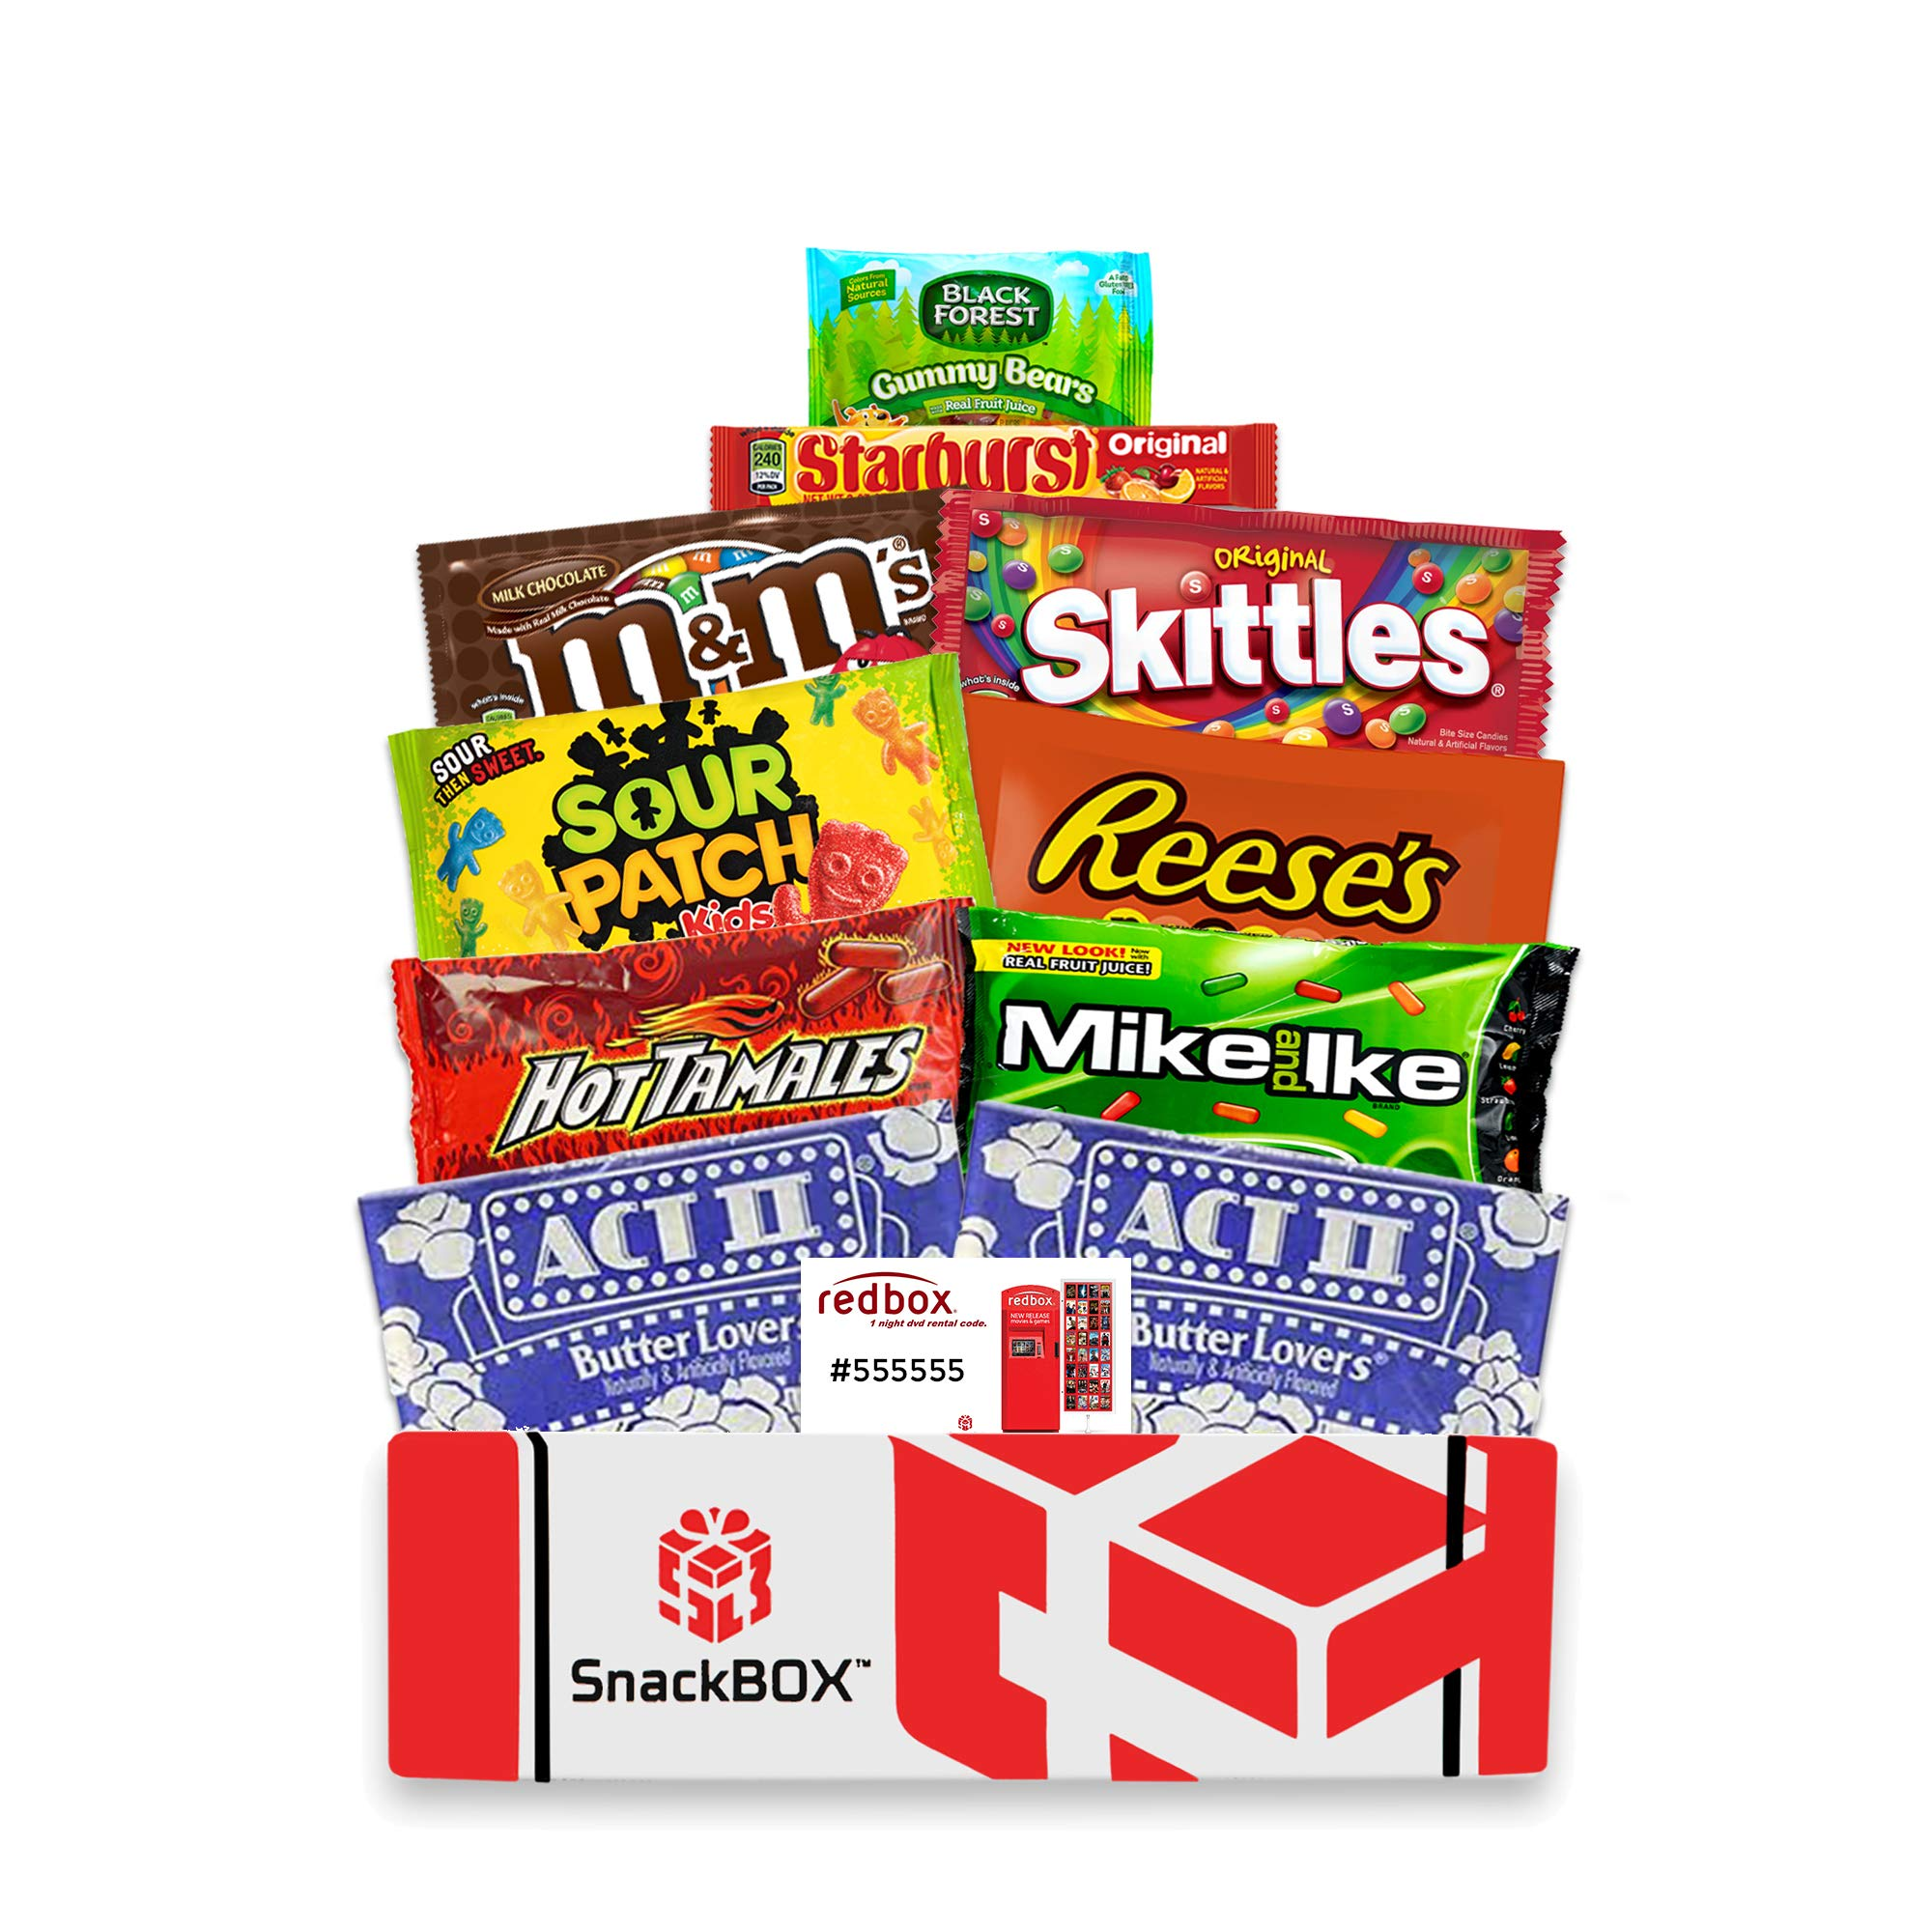 Redbox Movie Night Care Package with Popcorn, Candy and Movie Rental for College Students, Halloween, Gift Ideas, Birthday and Finals (10 Items) From Snack Box by SB SnackBOX